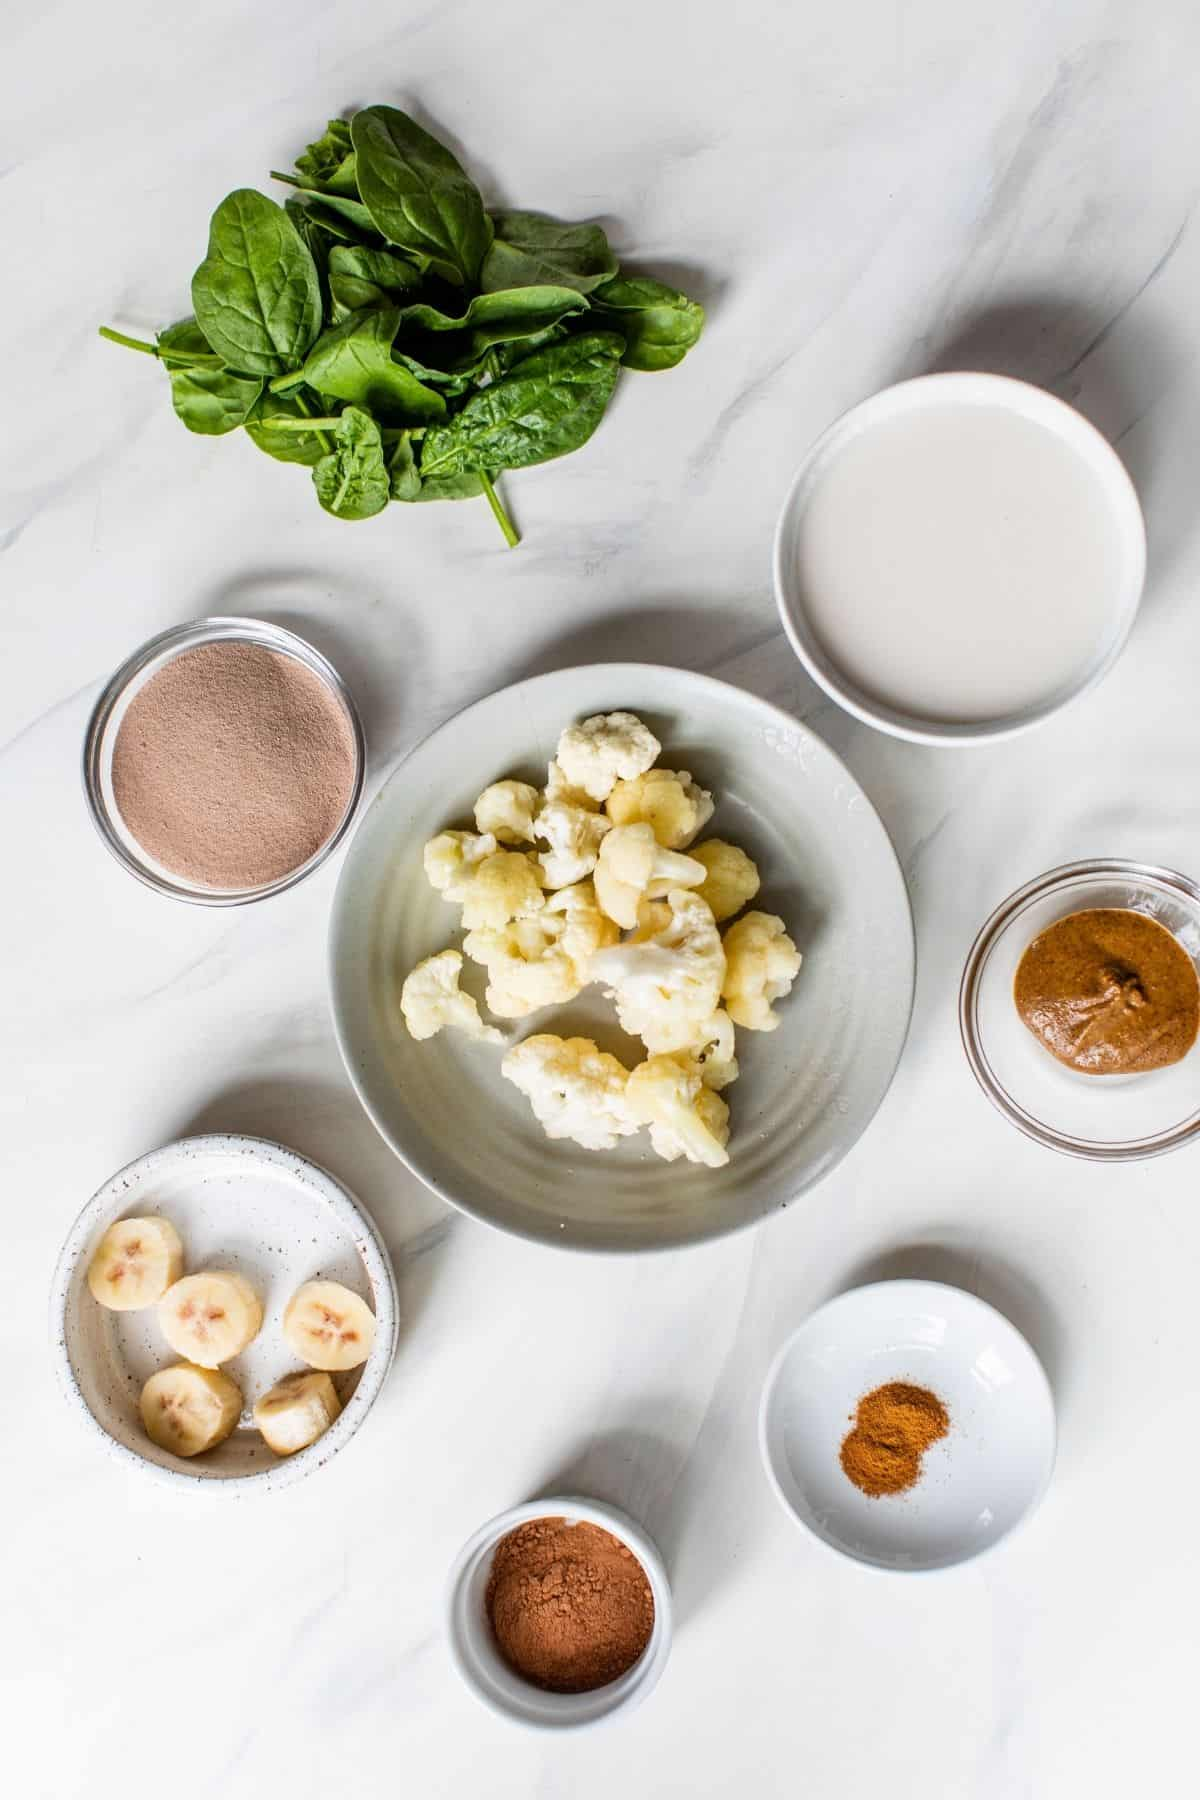 ingredients for making a chocolate protein shake divided into little bowls